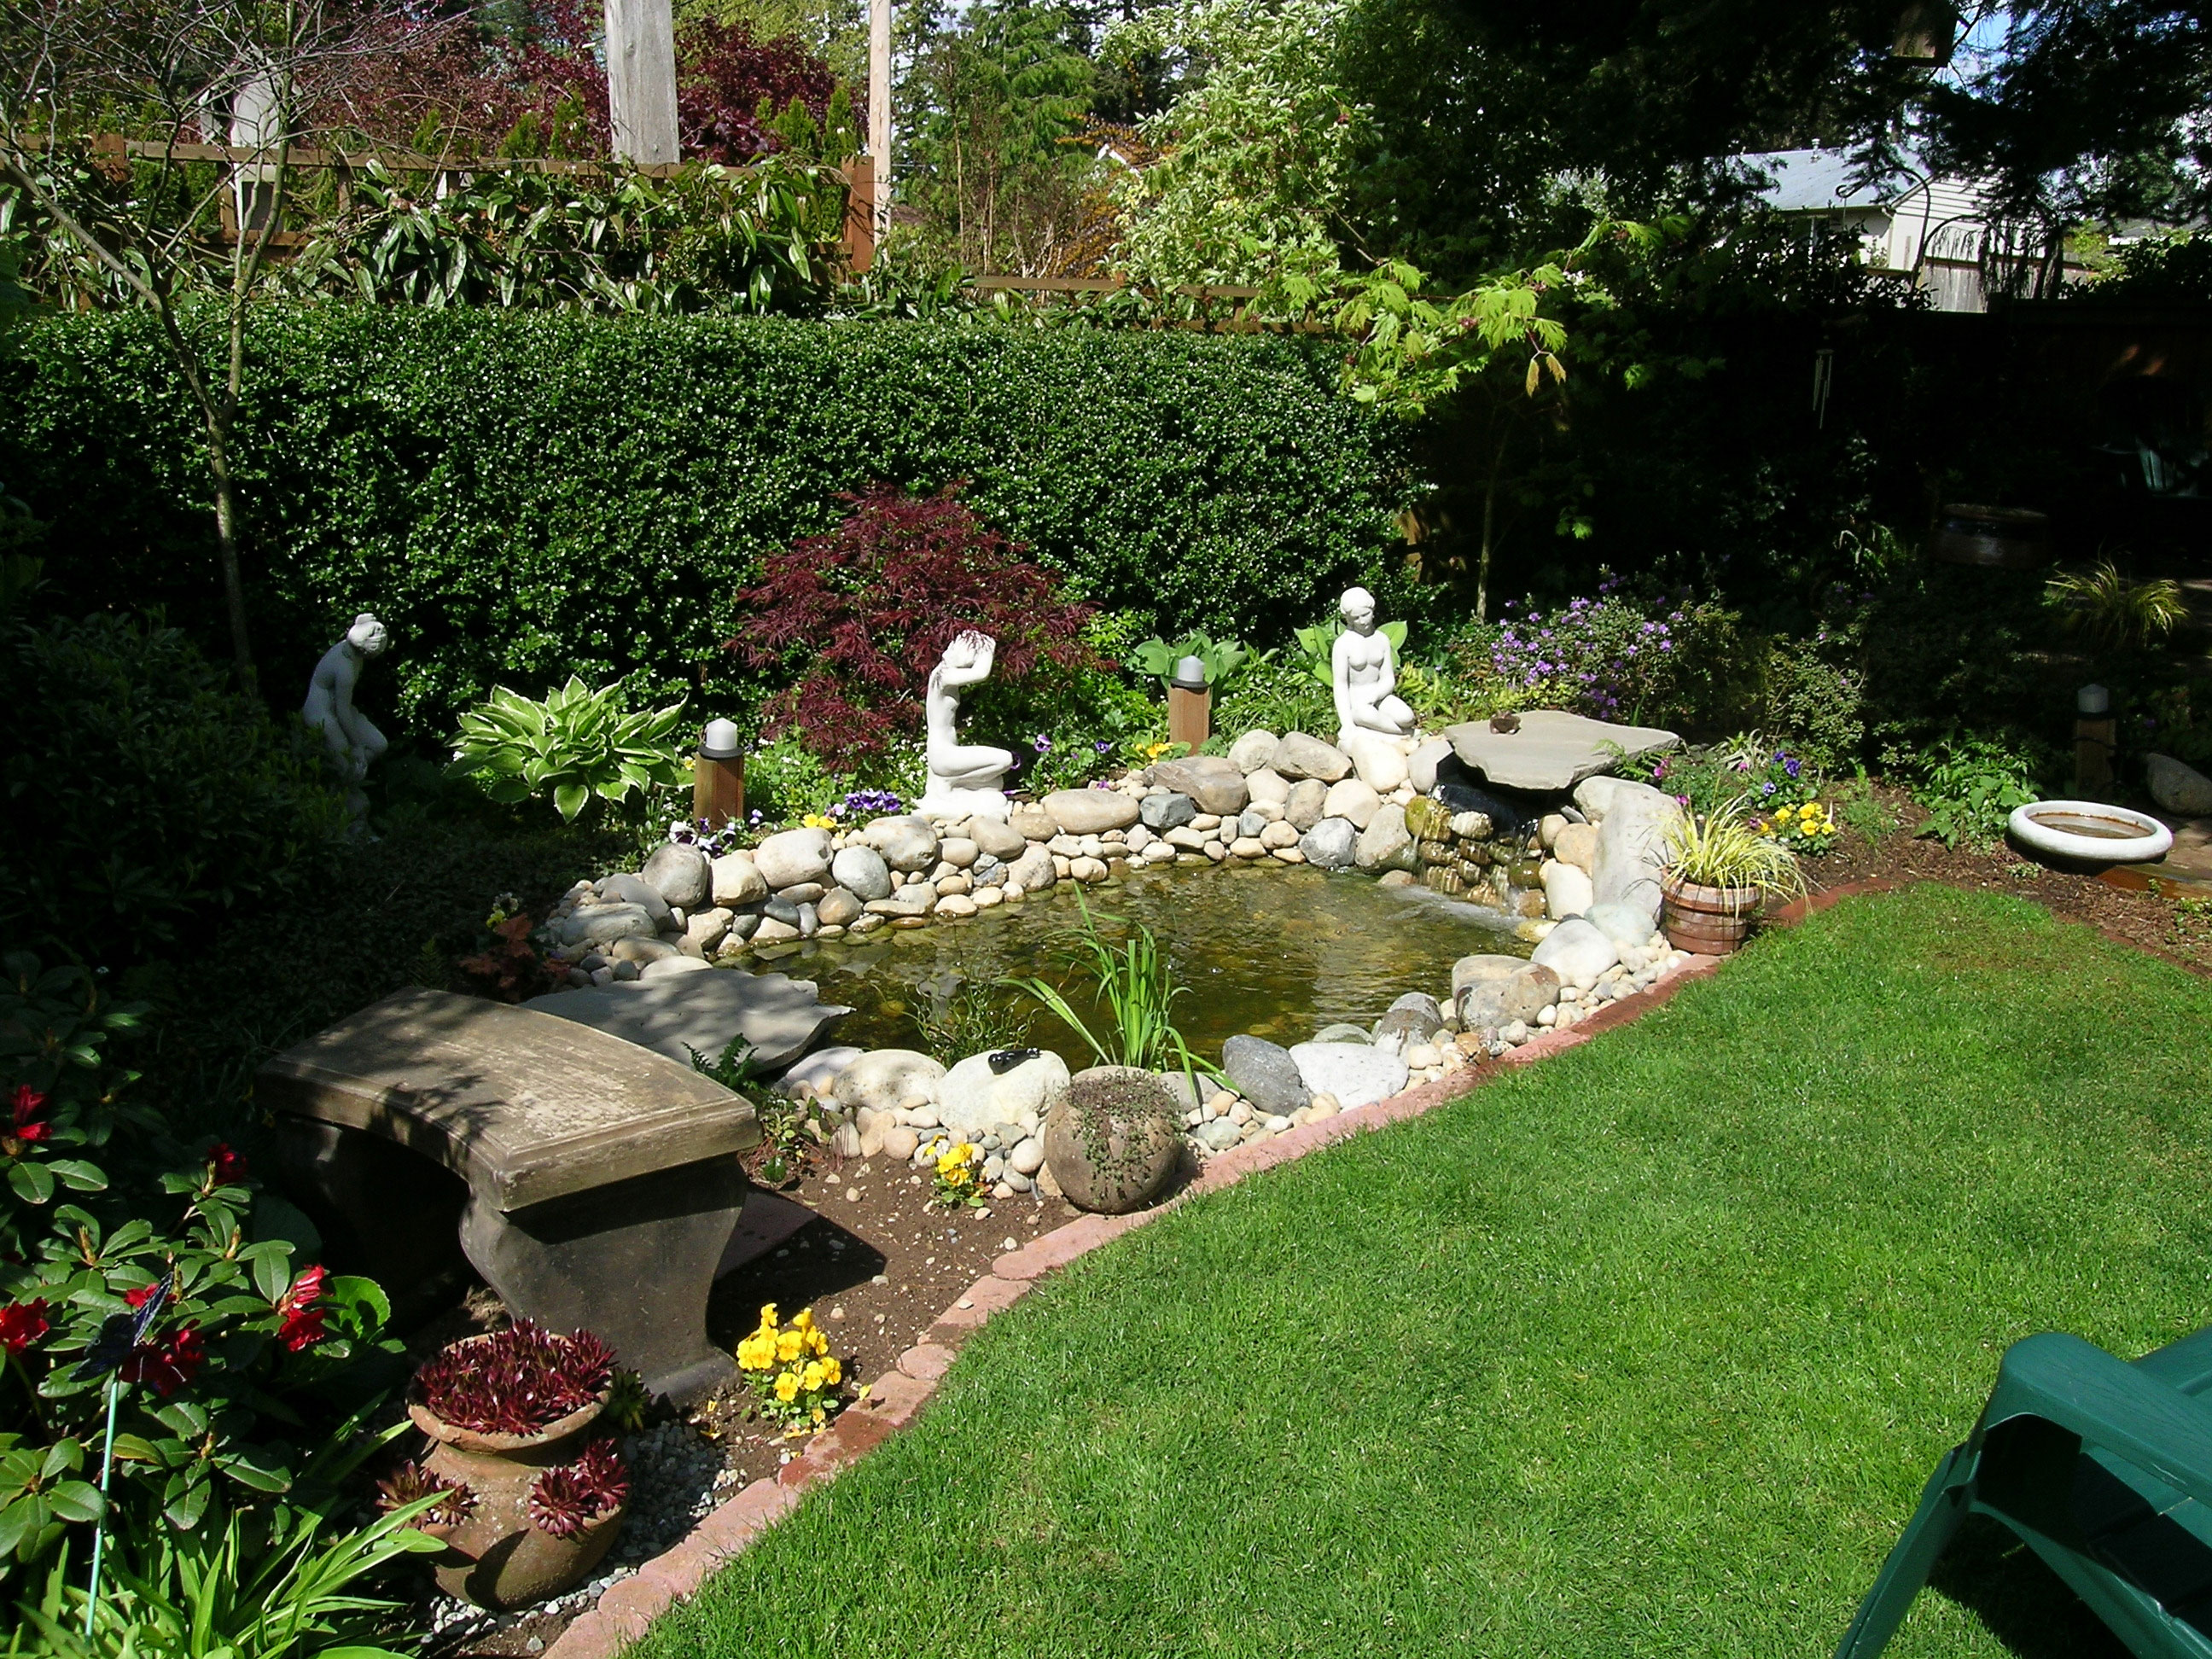 Backyard Pond designed with Do It Yourself Landscaping